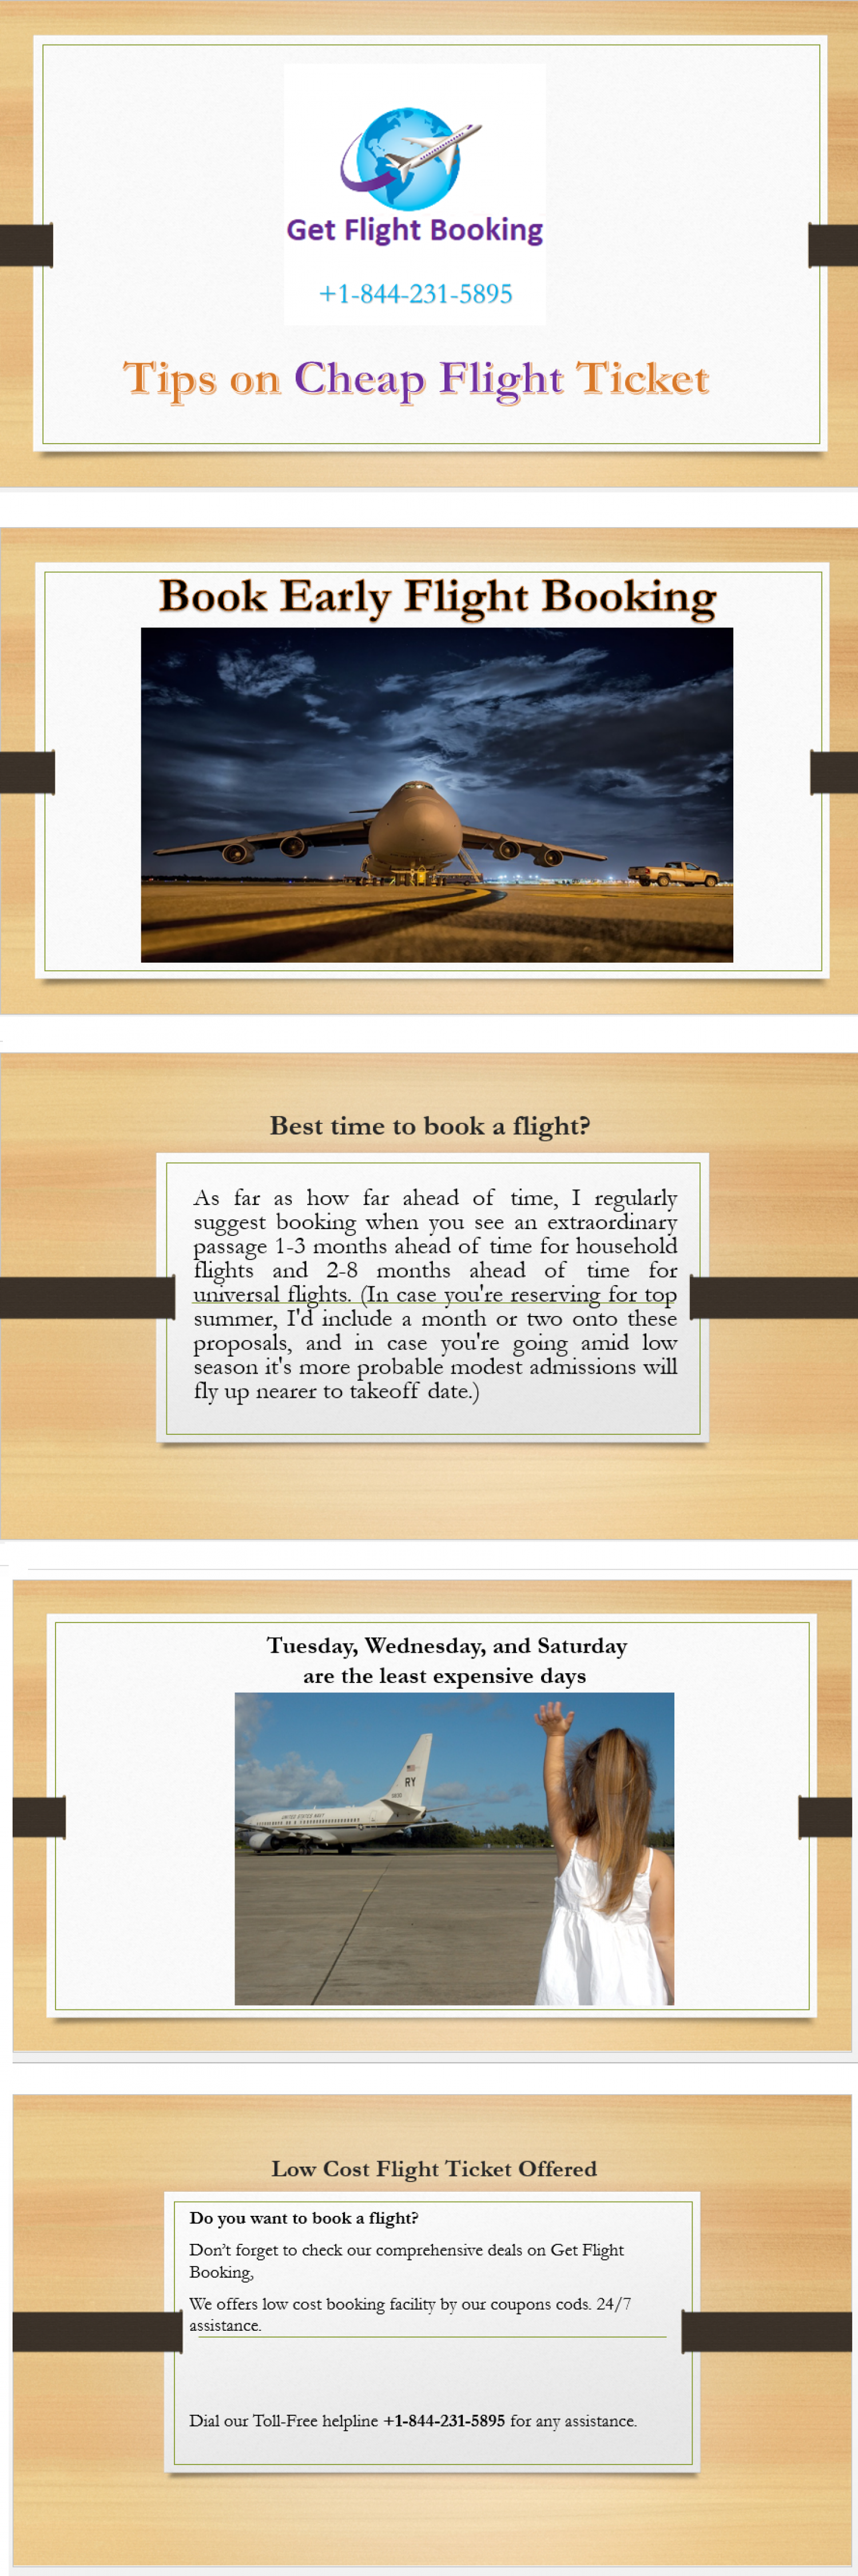 Tips on Cheap Flight Booking +1-844-231-5895 Flight Booking Online Infographic